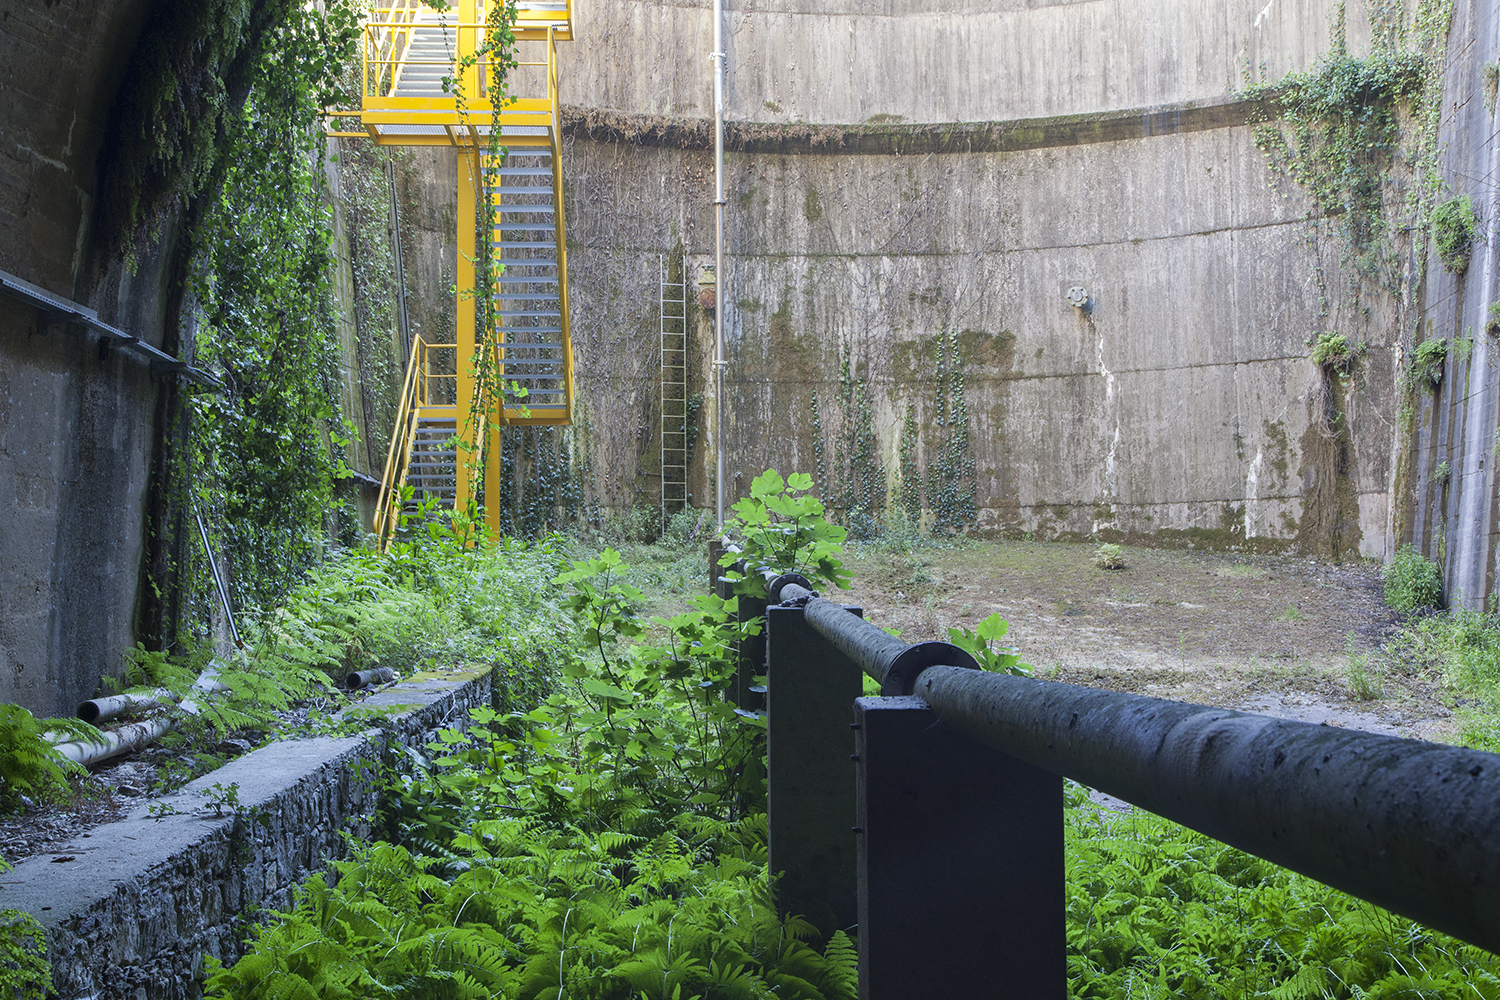 carina martins, untitled - dam tunnel with conduct yellow stairs and plants